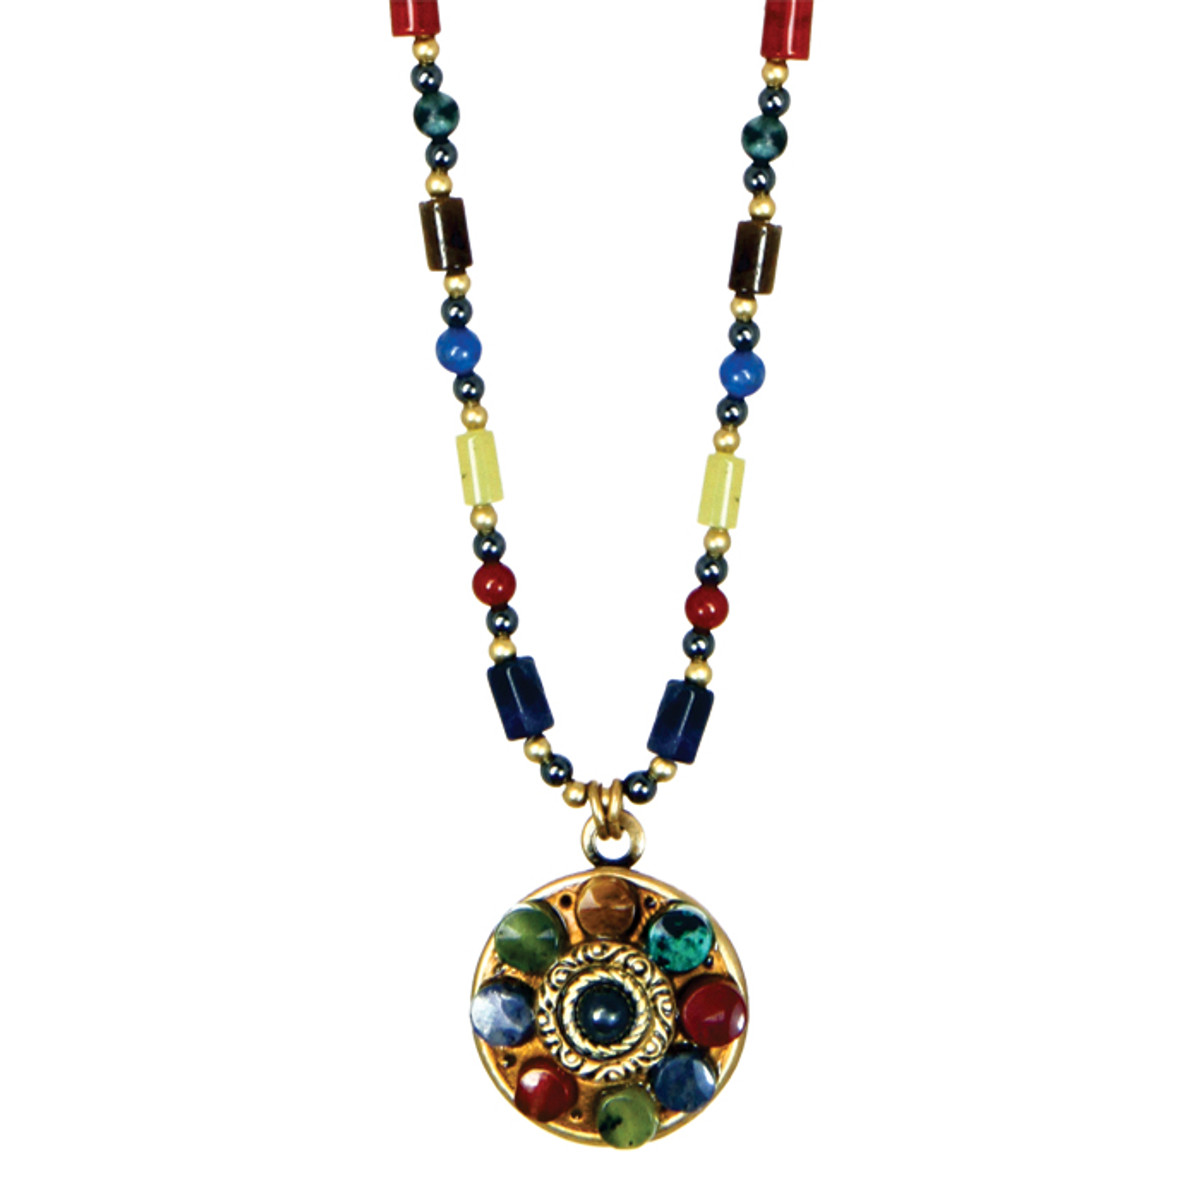 Michal Golan Necklace - Durango Small Round Pendant Beaded